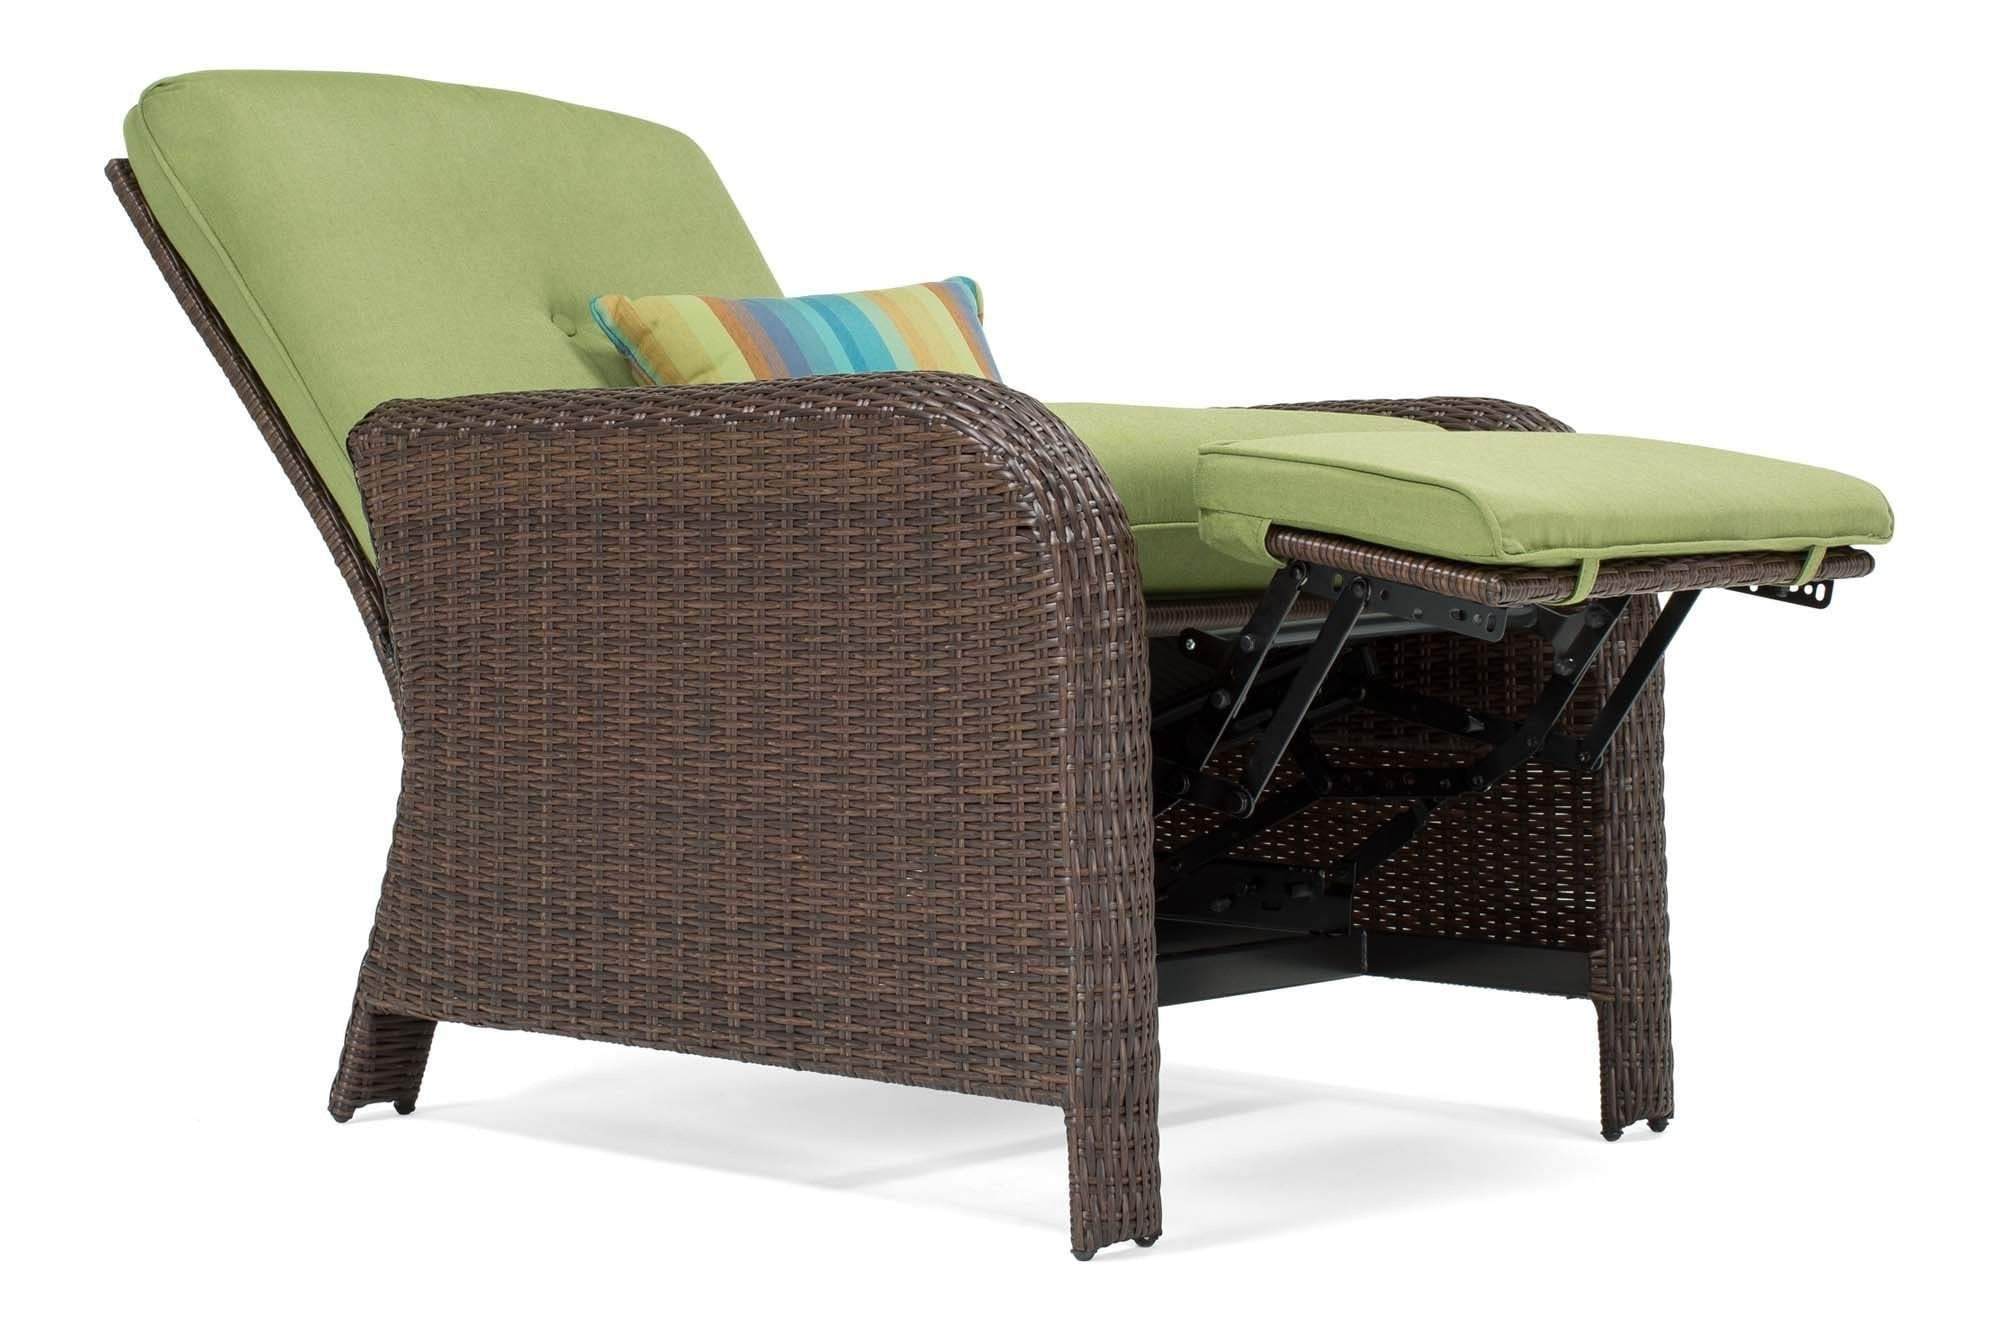 Wonderful Sawyer Patio Recliner Set: Includes 2 Recliners And Side Table (Cilantro  Green)